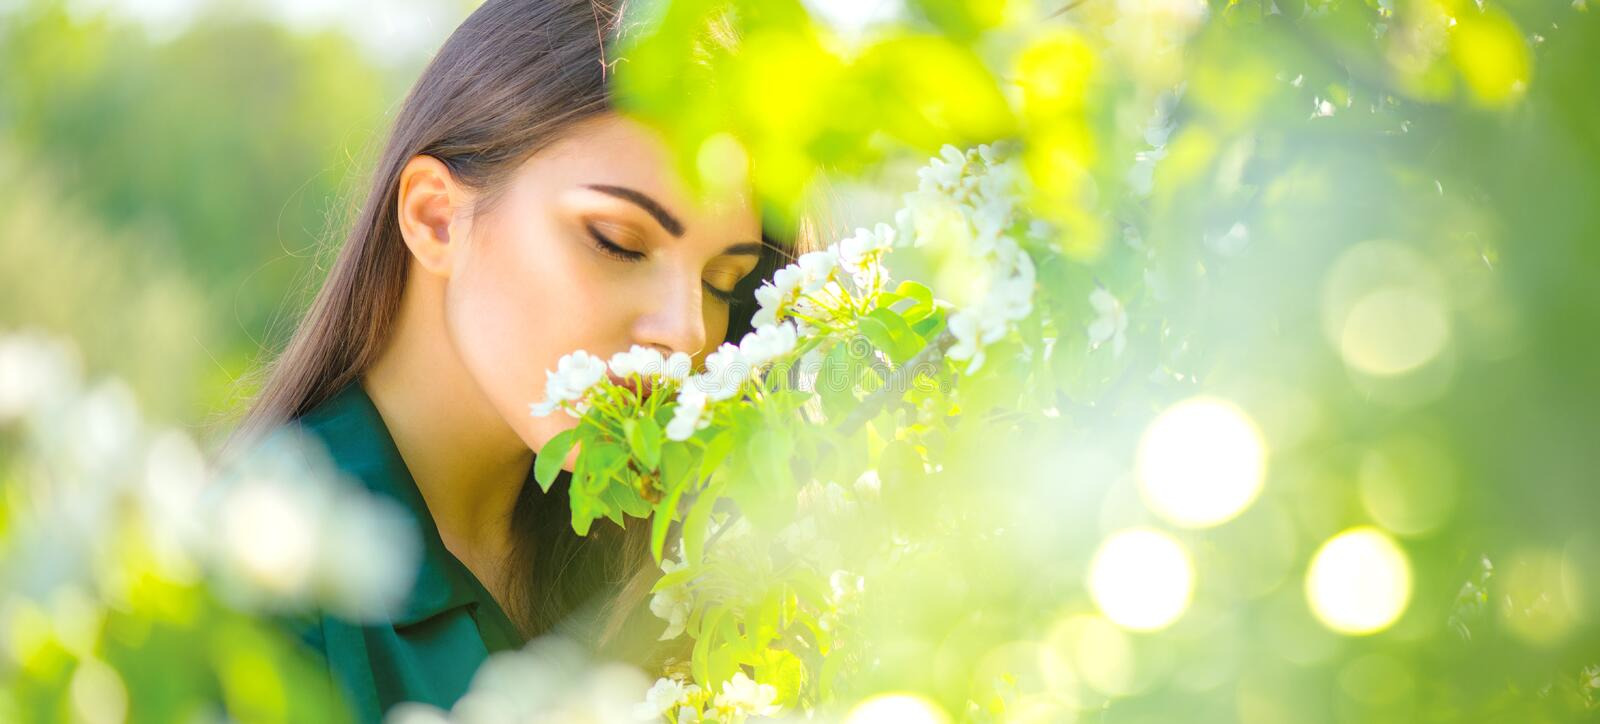 Beauty young woman enjoying nature in spring apple orchard, Happy beautiful girl in a garden with blooming fruit trees stock image